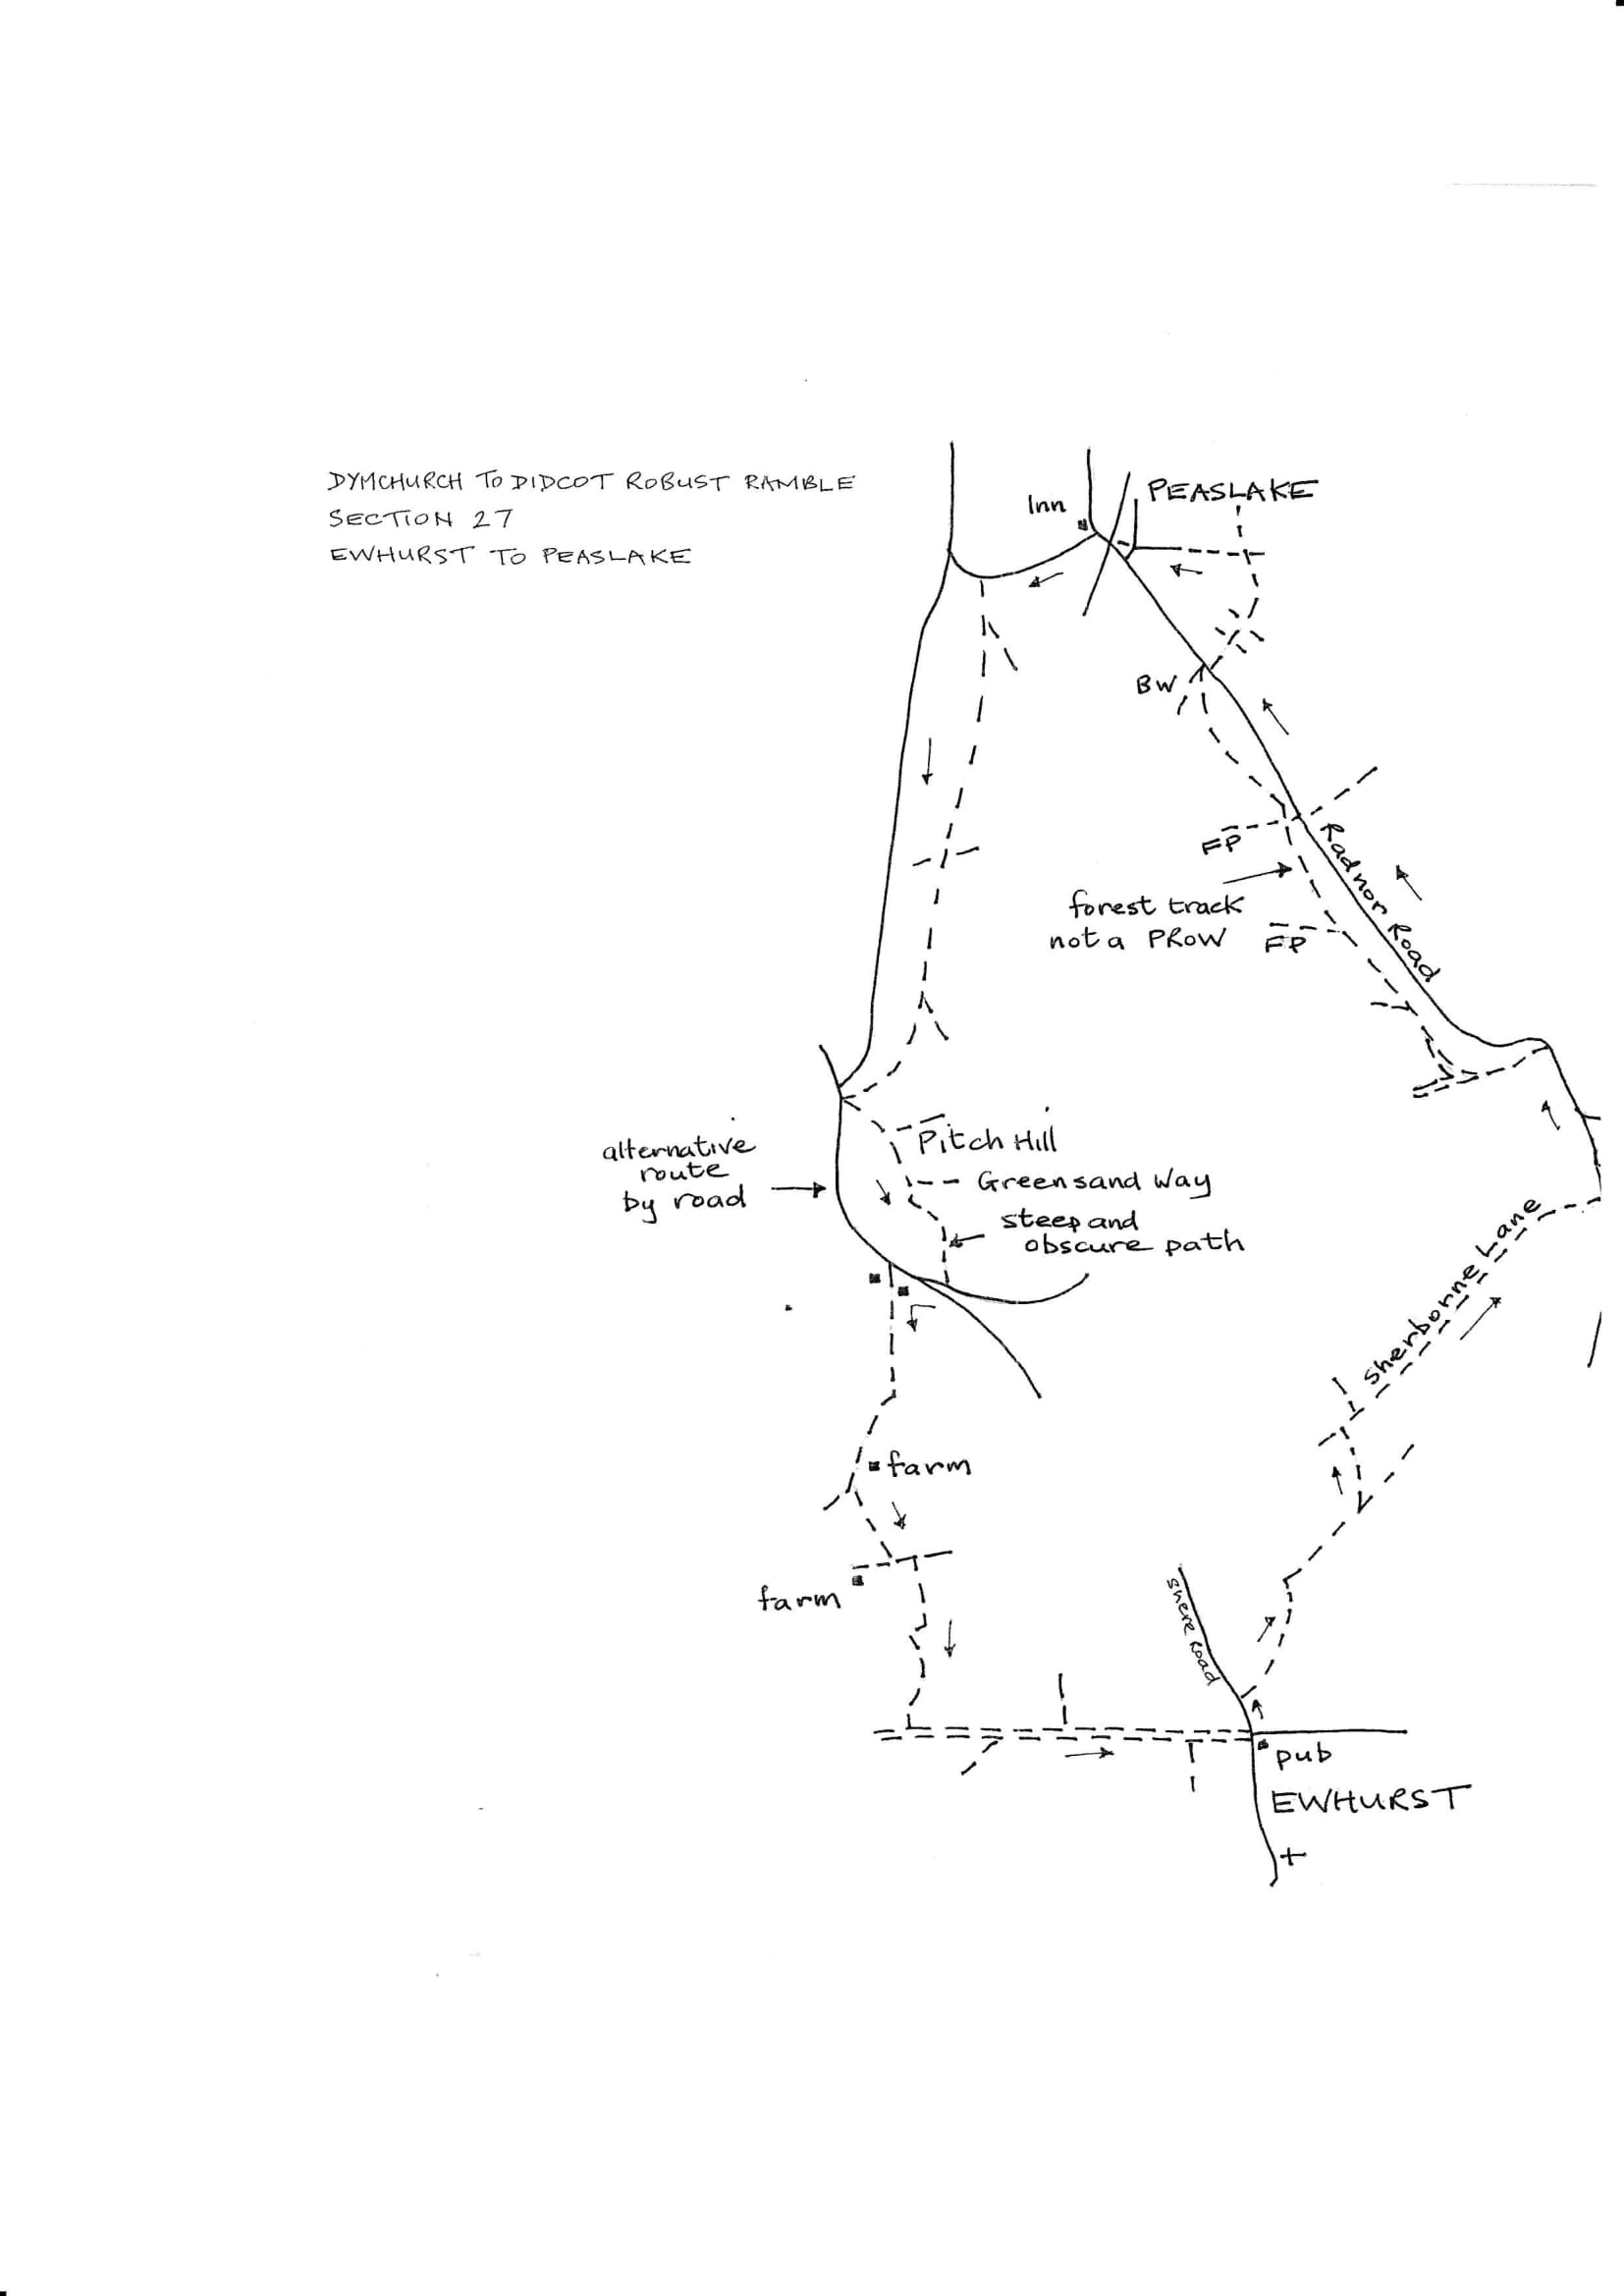 Map of Dymchurch To Didcot Robust Ramble: Section 27 Return